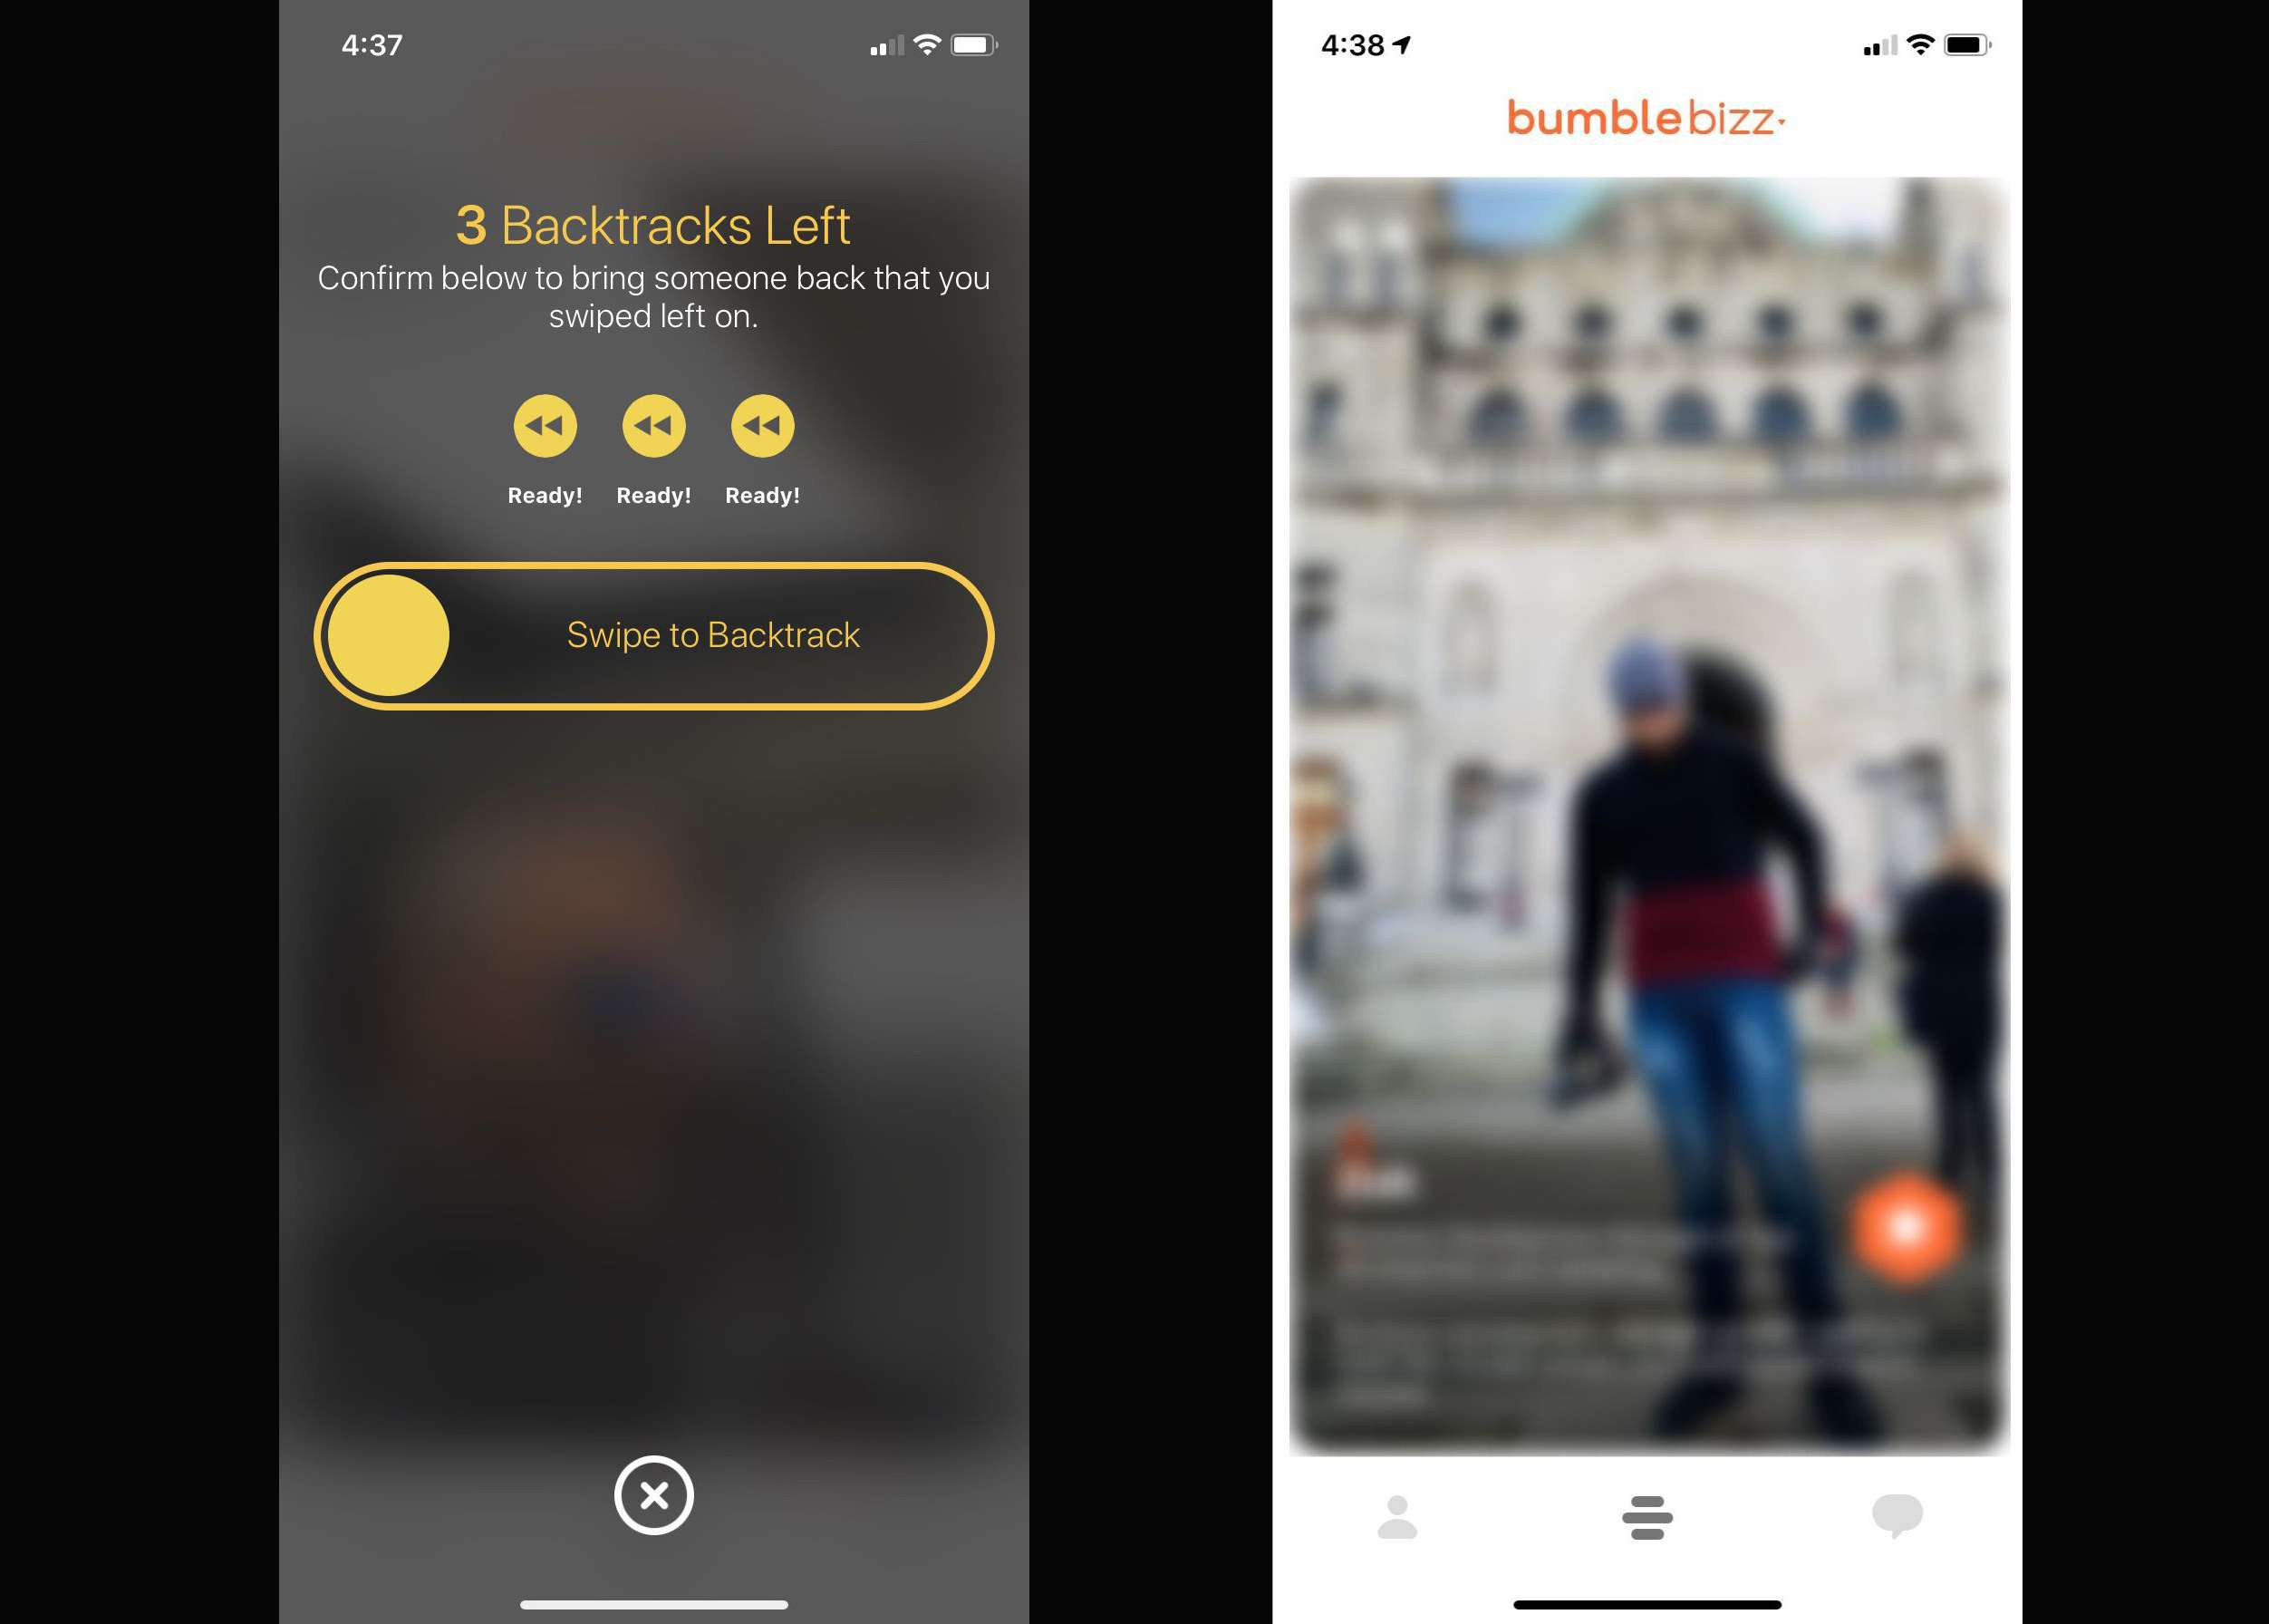 How to Go Back on Bumble